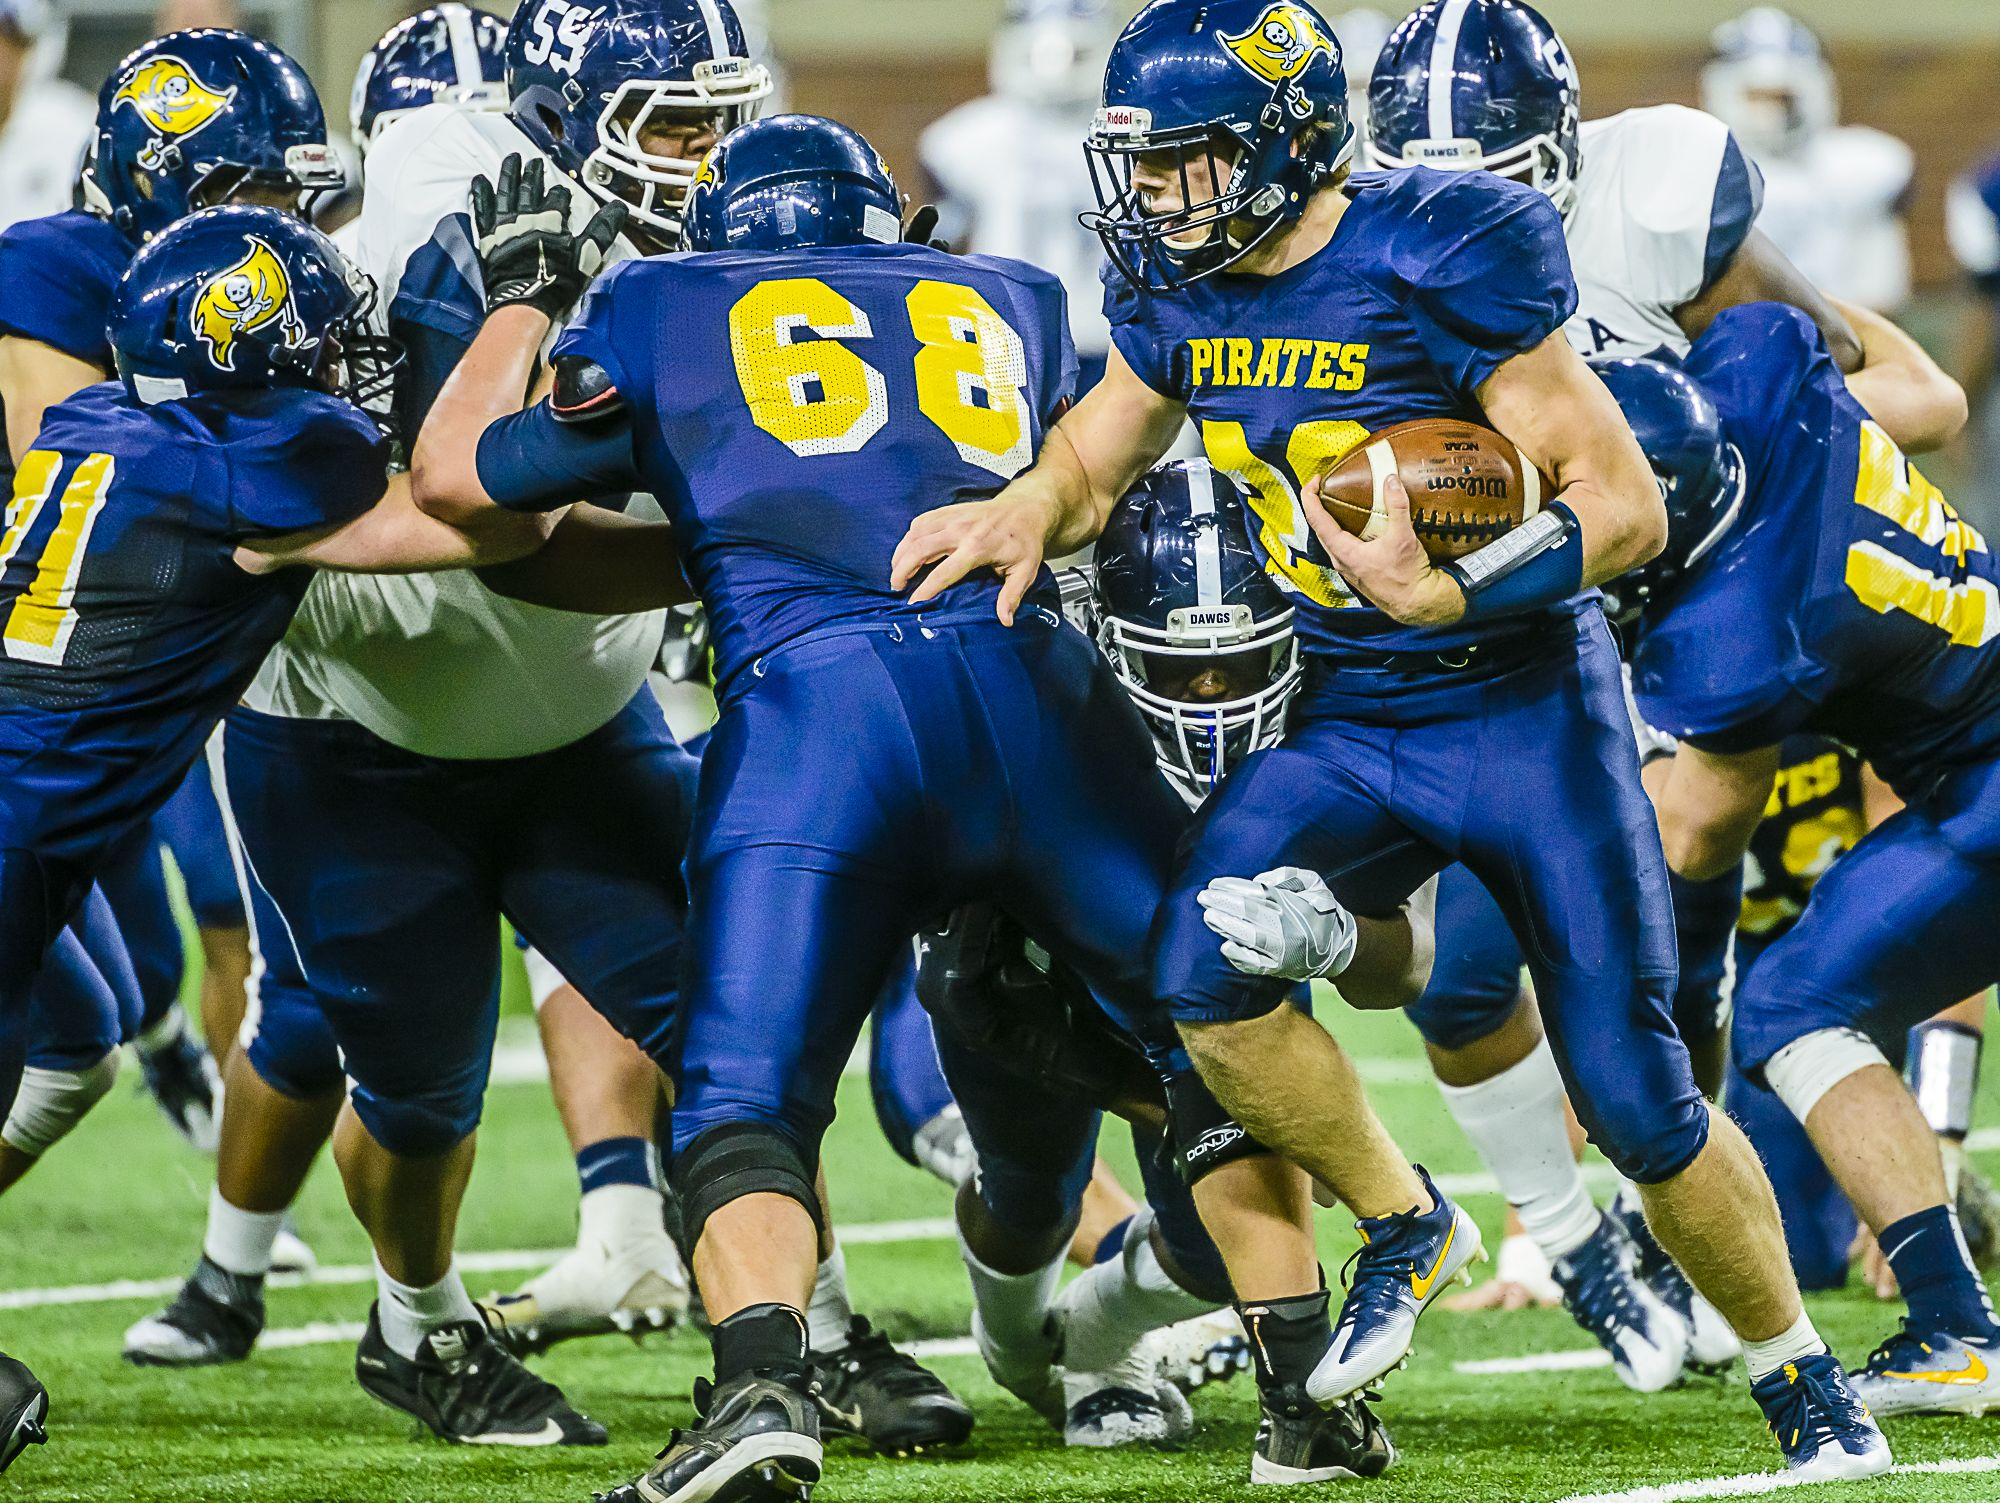 A Detroit Loyola defender gets a hand on the leg of Pewamo-Westphalia's Jared Smith while he's still in the backfield. The AP Division 7-8 Player of the Year was held in check by Loyola in the game.